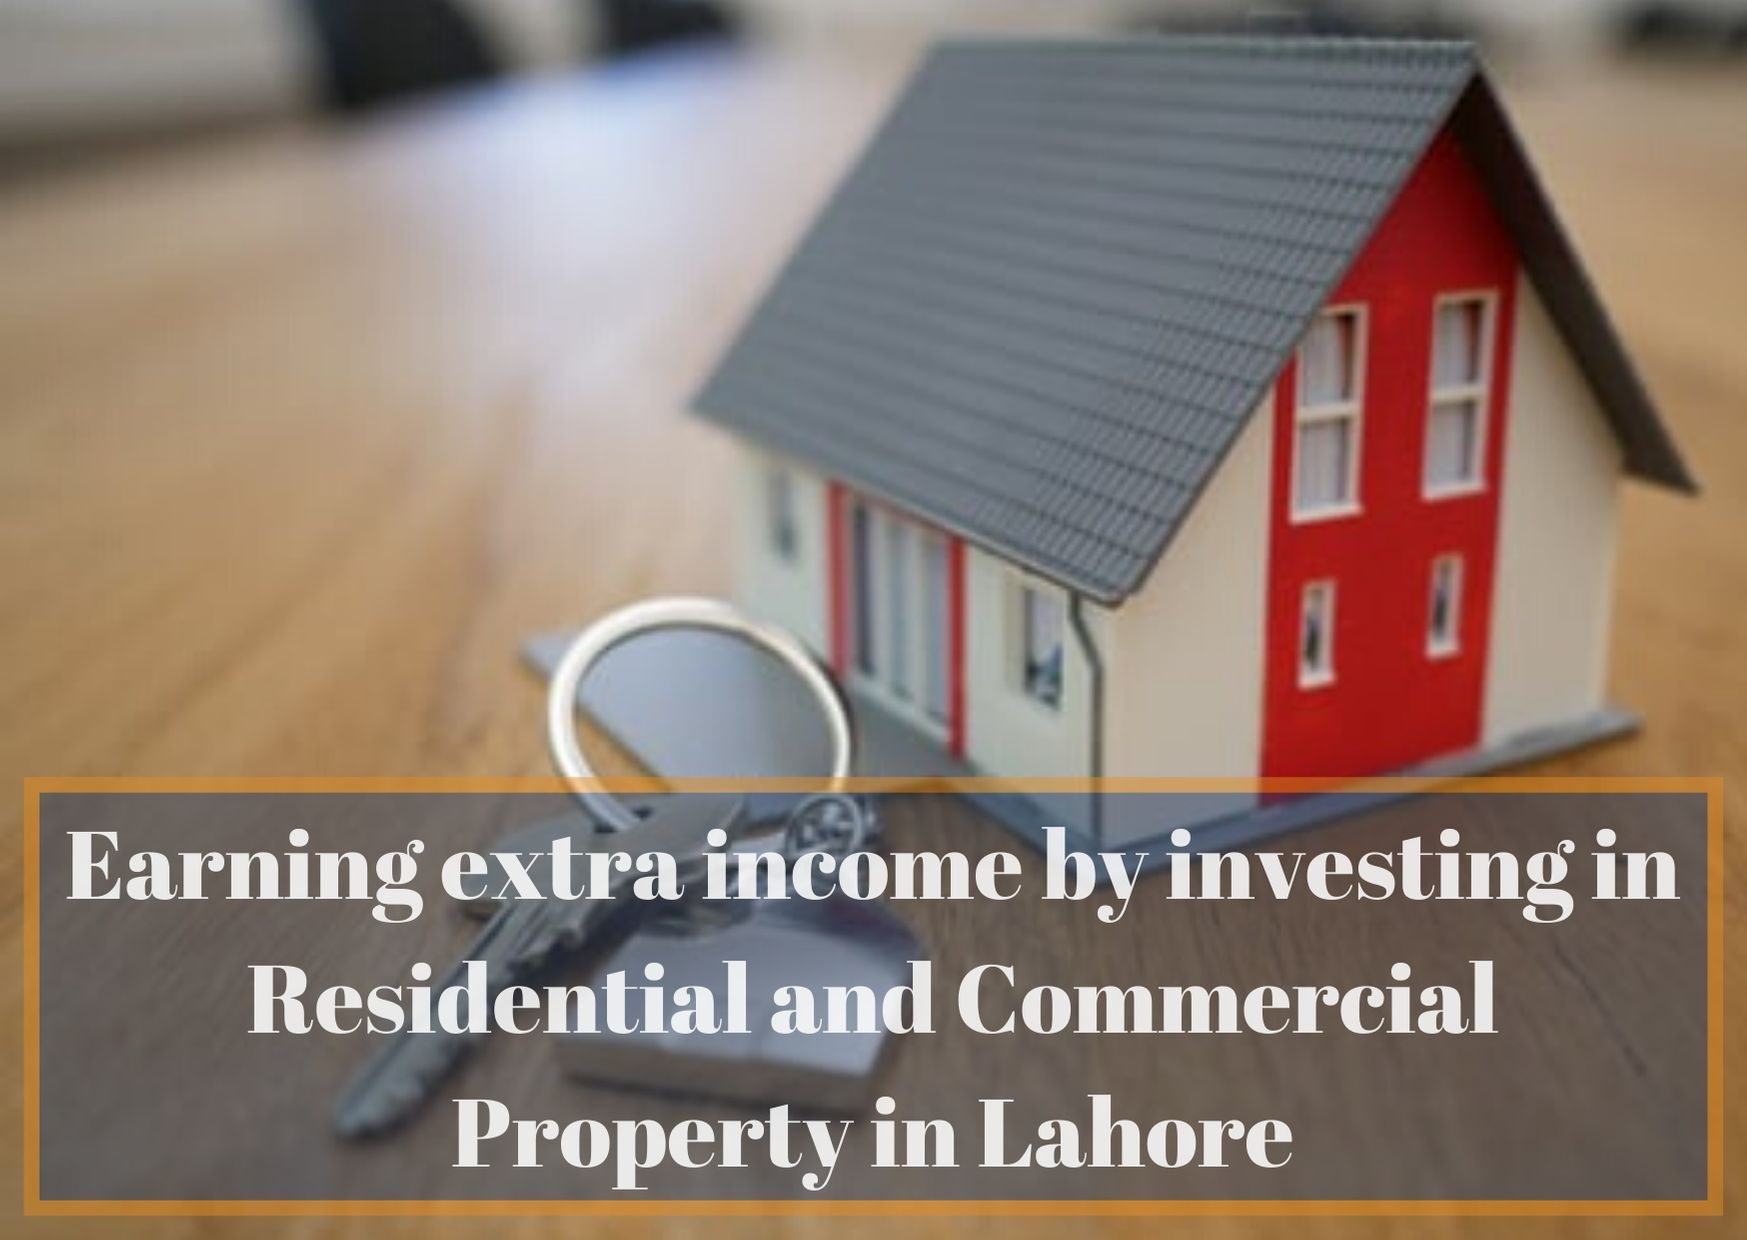 Earning extra income by investing in Residential and Commercial Property in Lahore